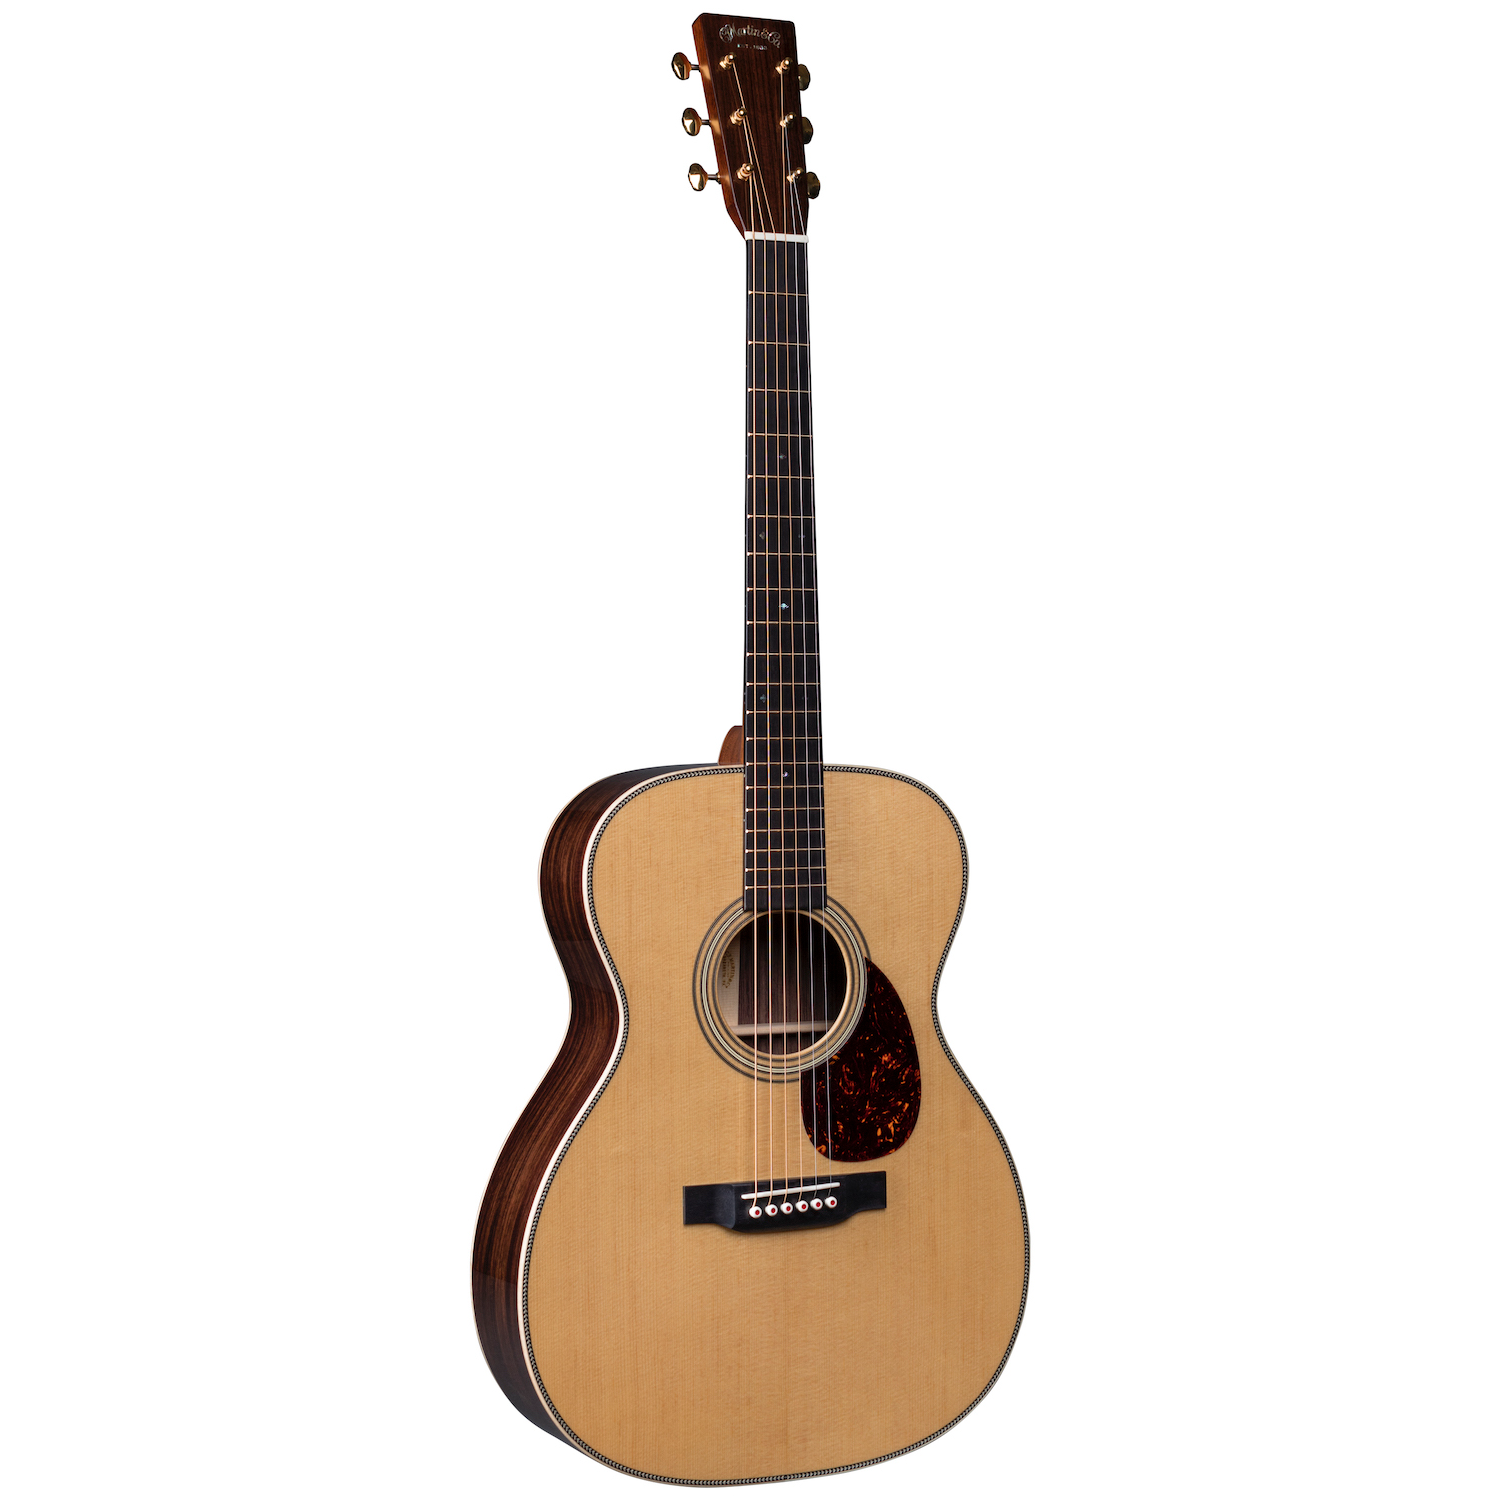 Martin OM28 MD Modern Deluxe Series Orchestral Model Acoustic Guitar